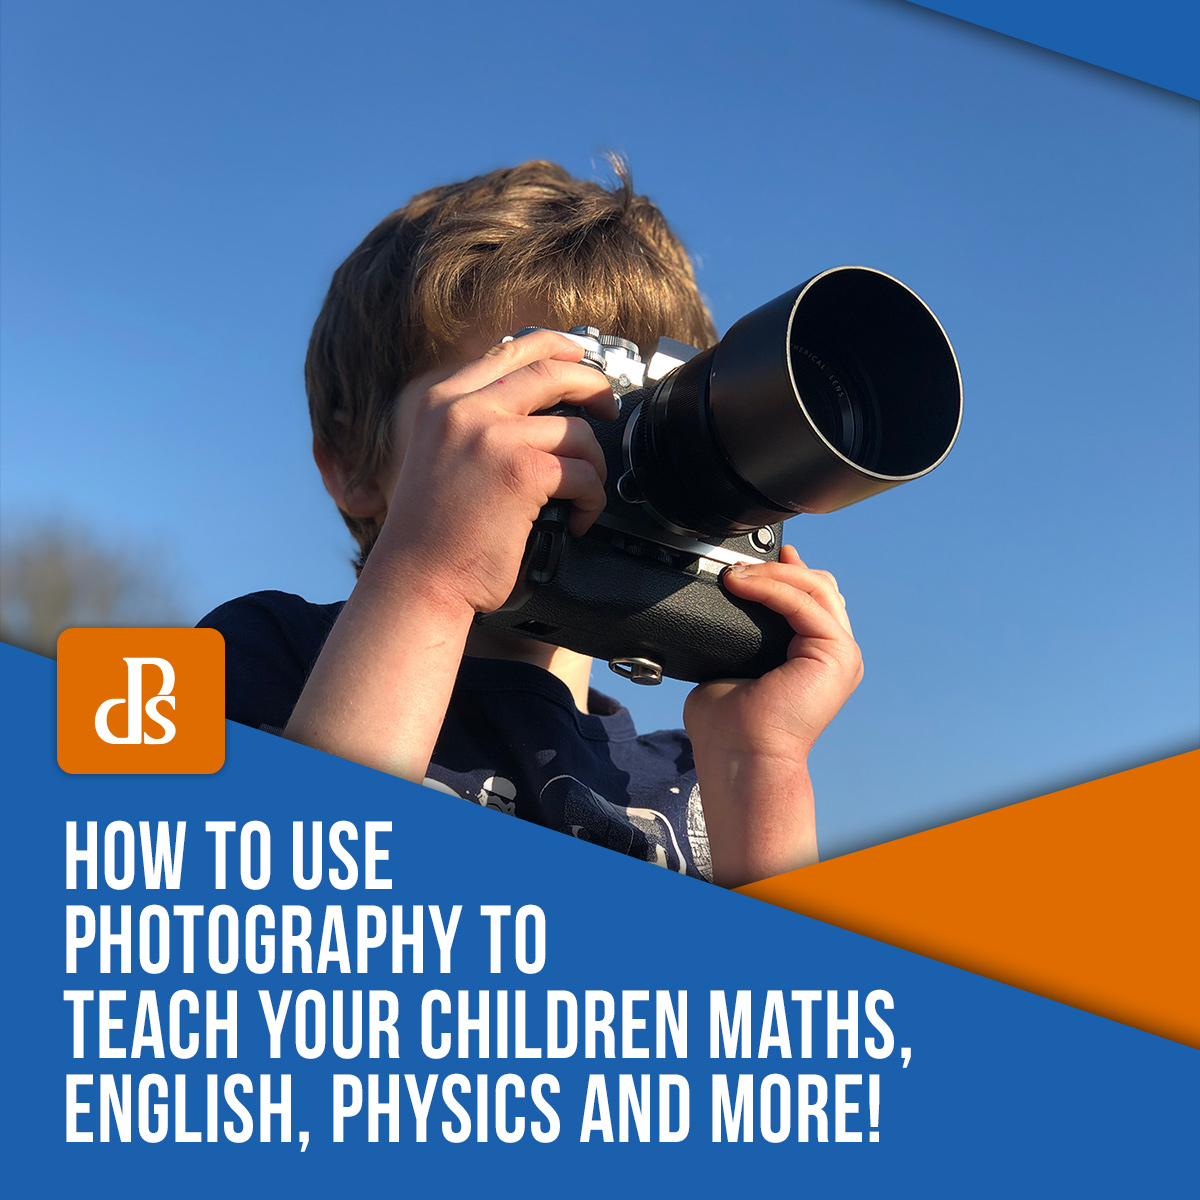 https://i1.wp.com/digital-photography-school.com/wp-content/uploads/2020/04/dps-use-photography-to-teach-your-children.jpg?ssl=1